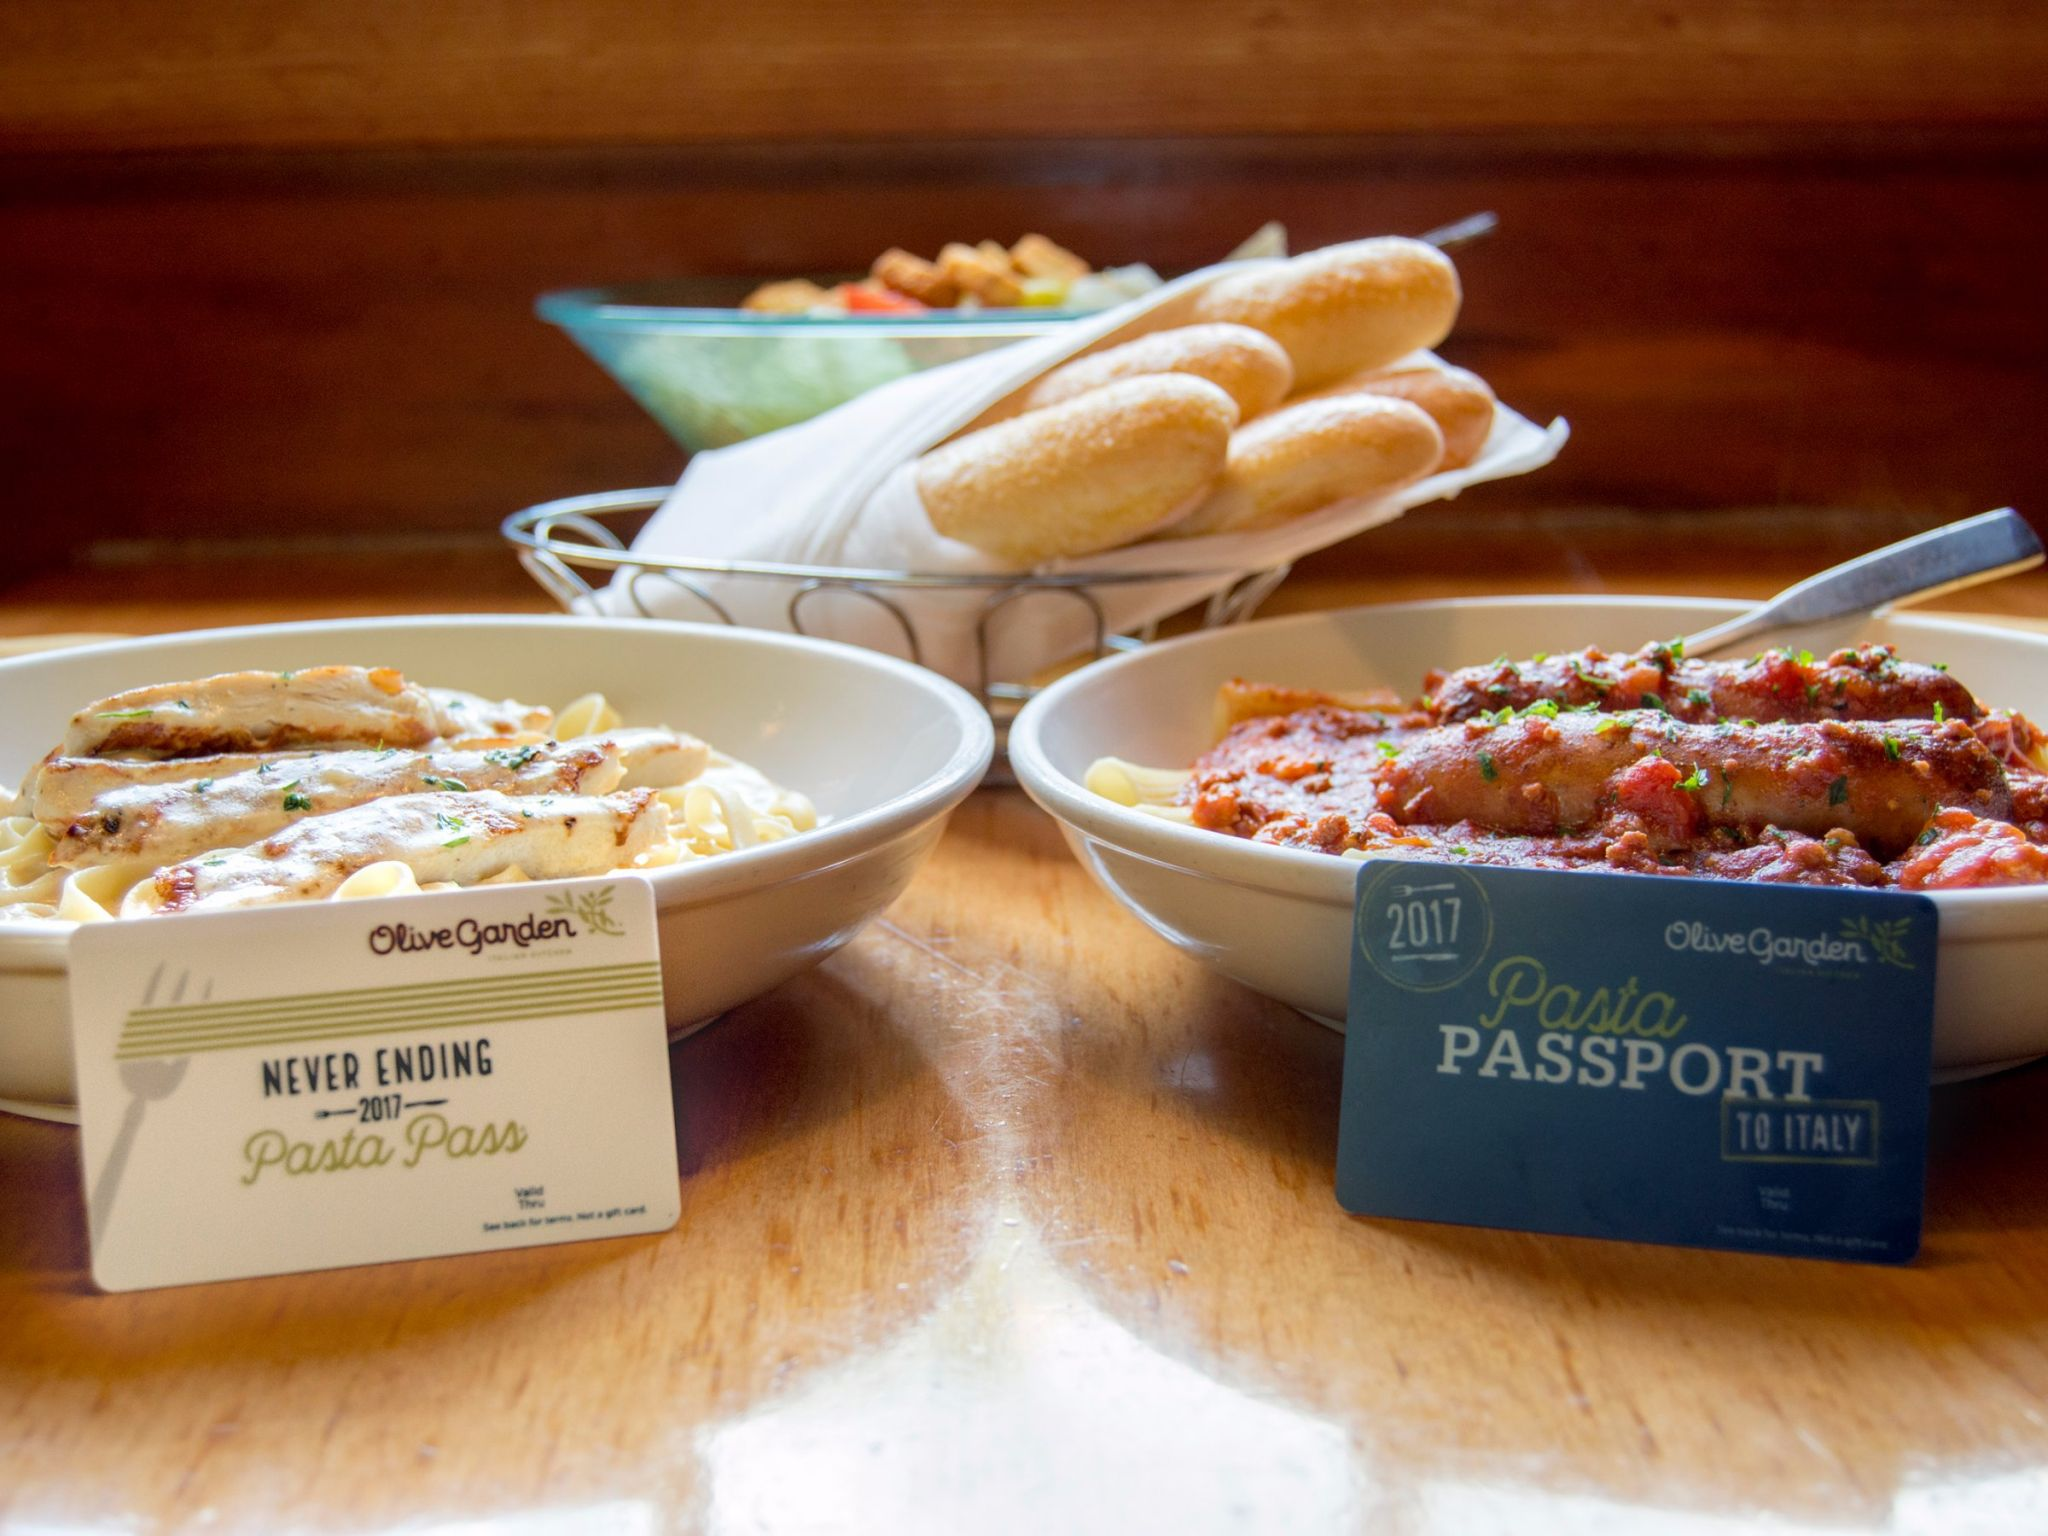 Olive Garden\'s never-ending pasta passes sold out in less than a ...